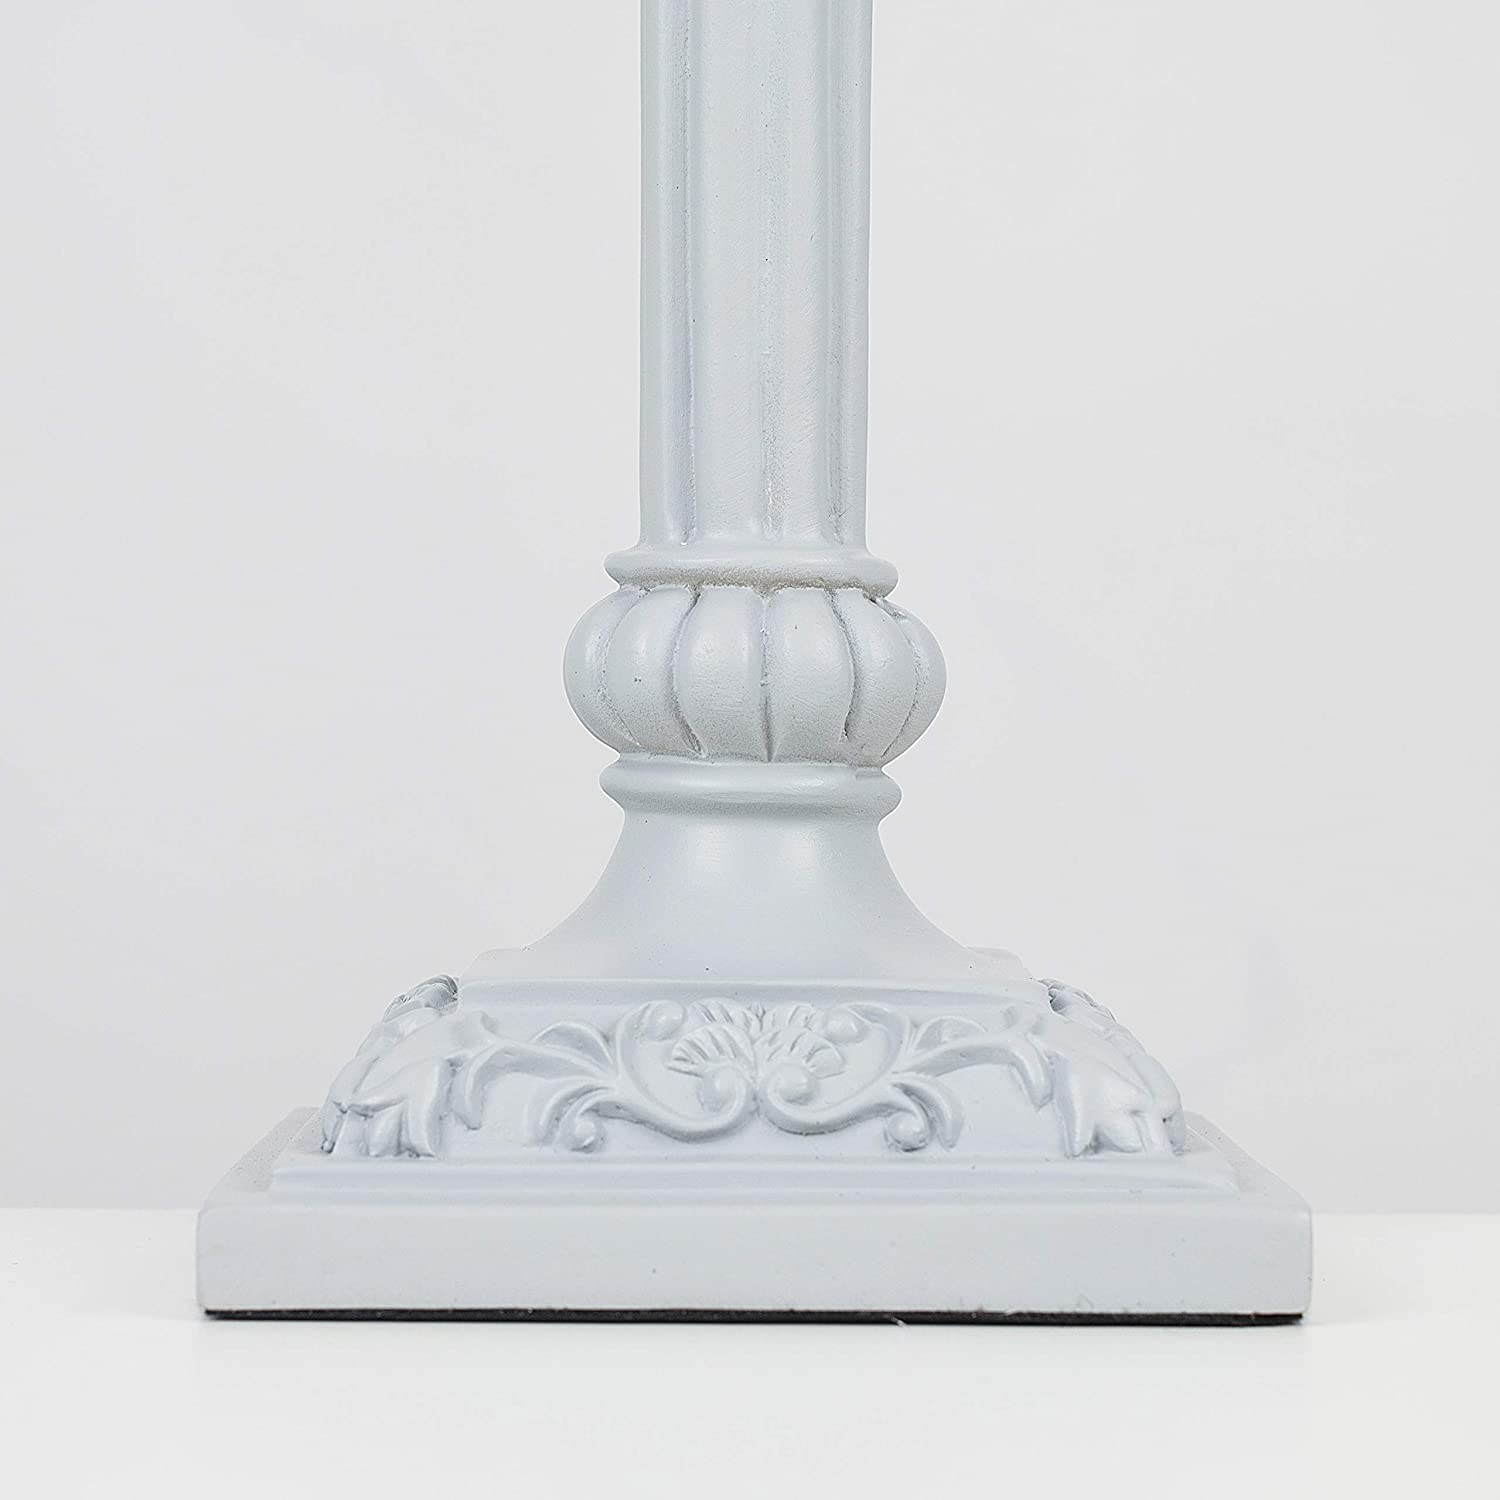 Tall Traditional Cool Grey Sculptured Candlestick Style Table Lamp Base